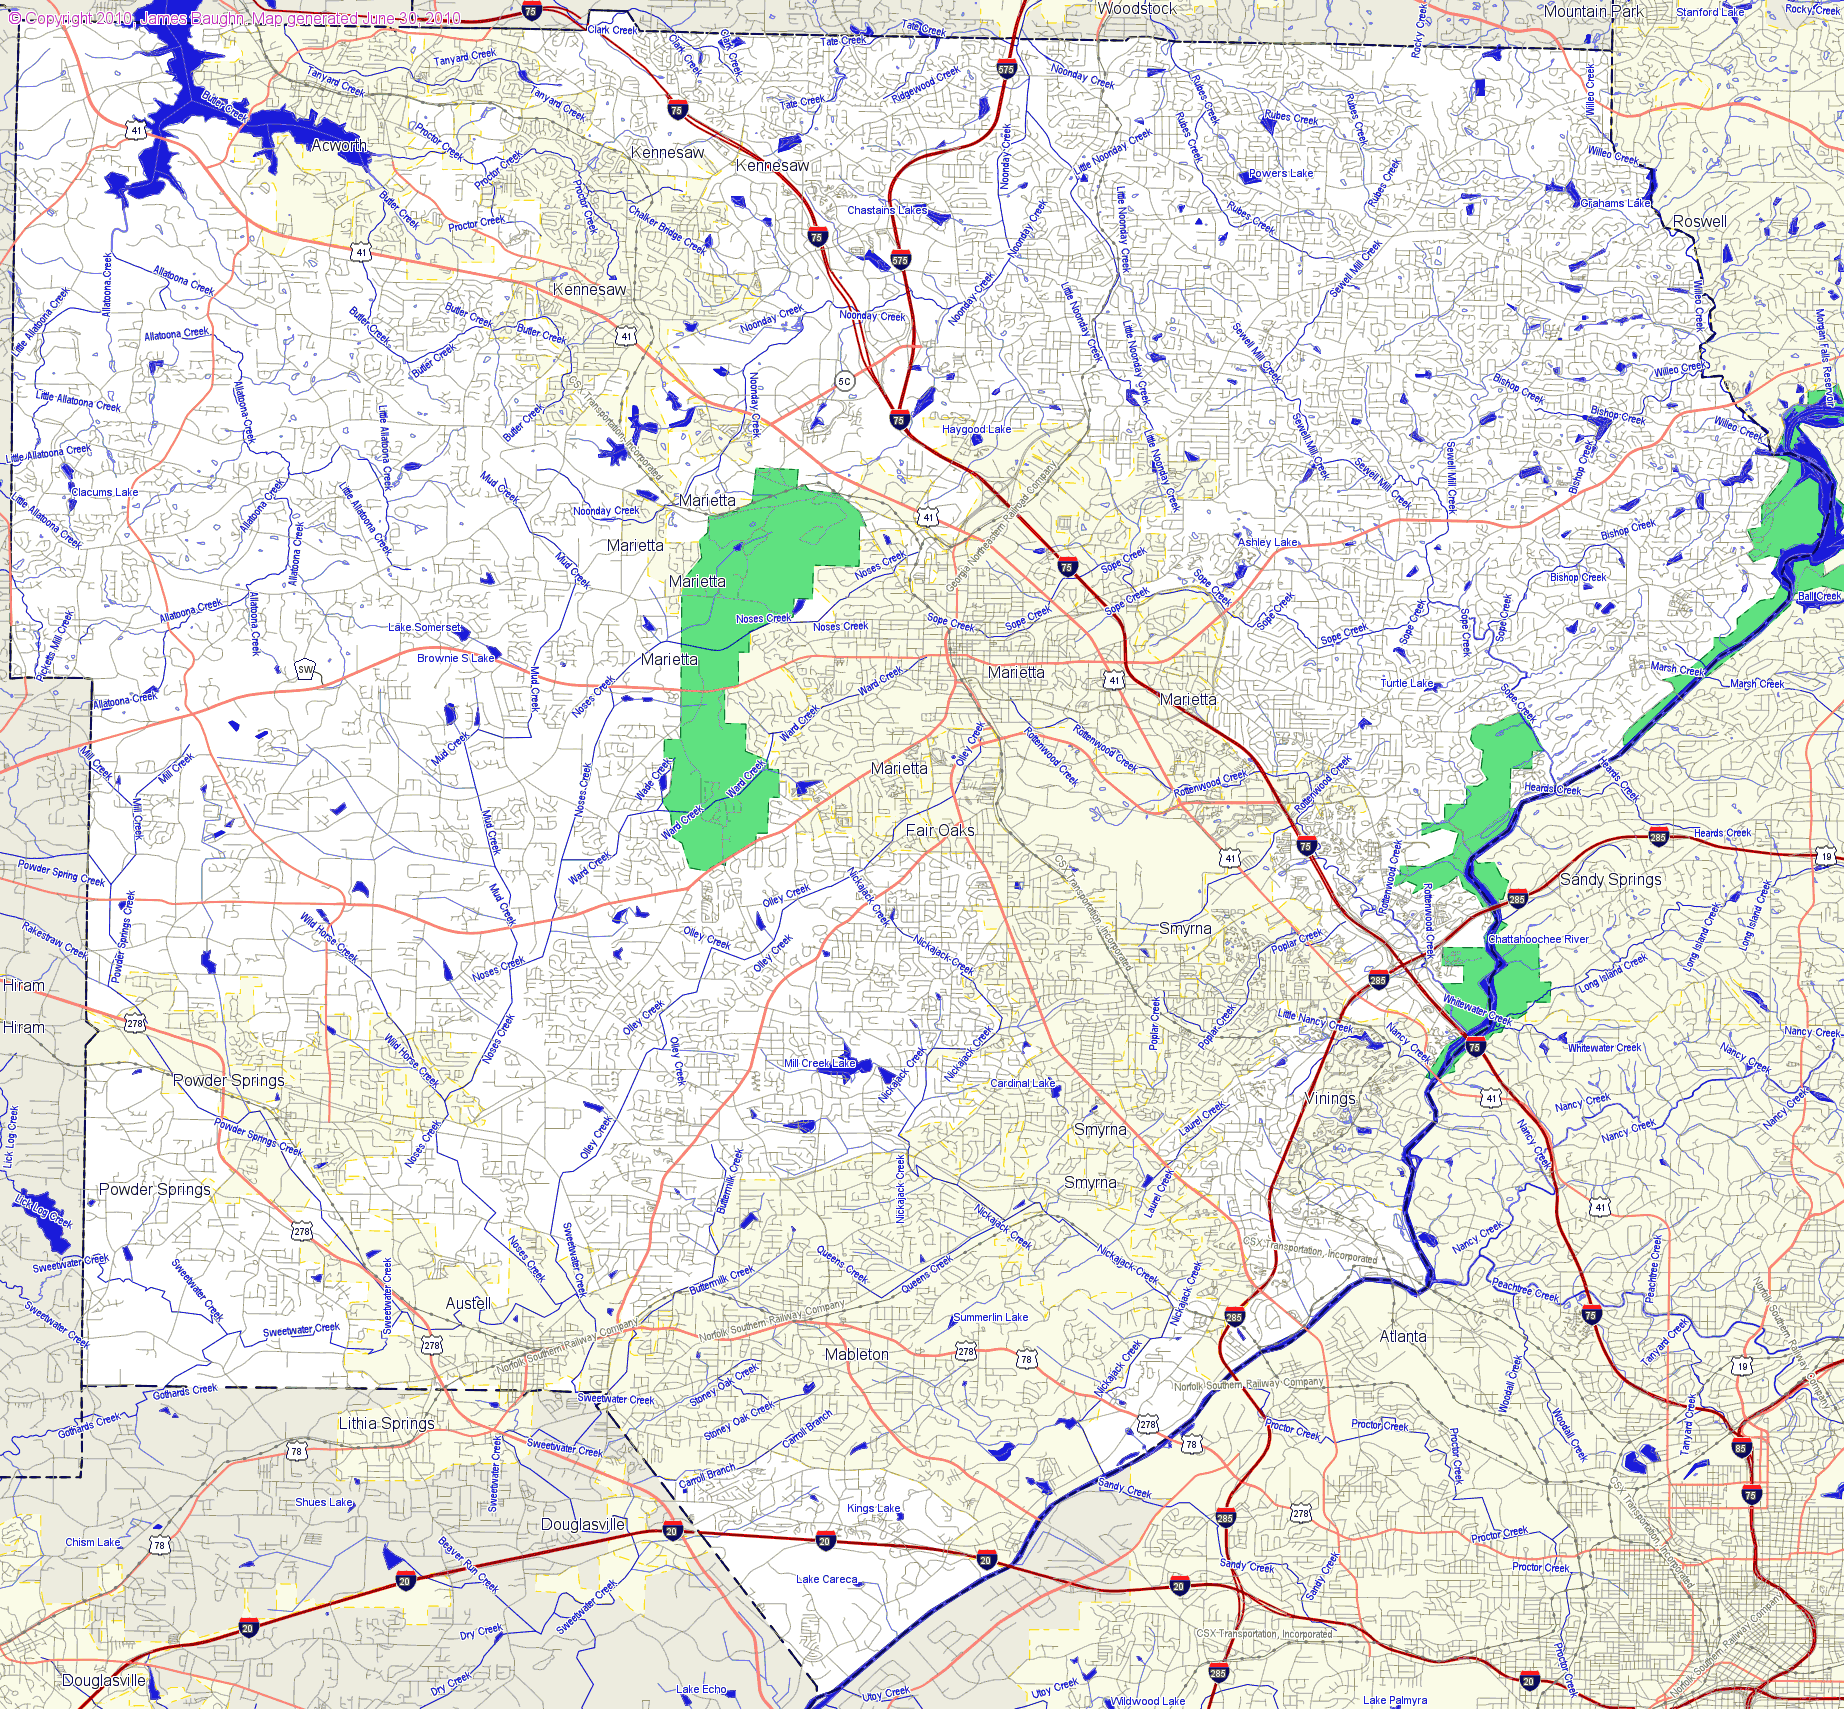 County Map Of Georgia With Roads.Landmarkhunter Com Cobb County Georgia